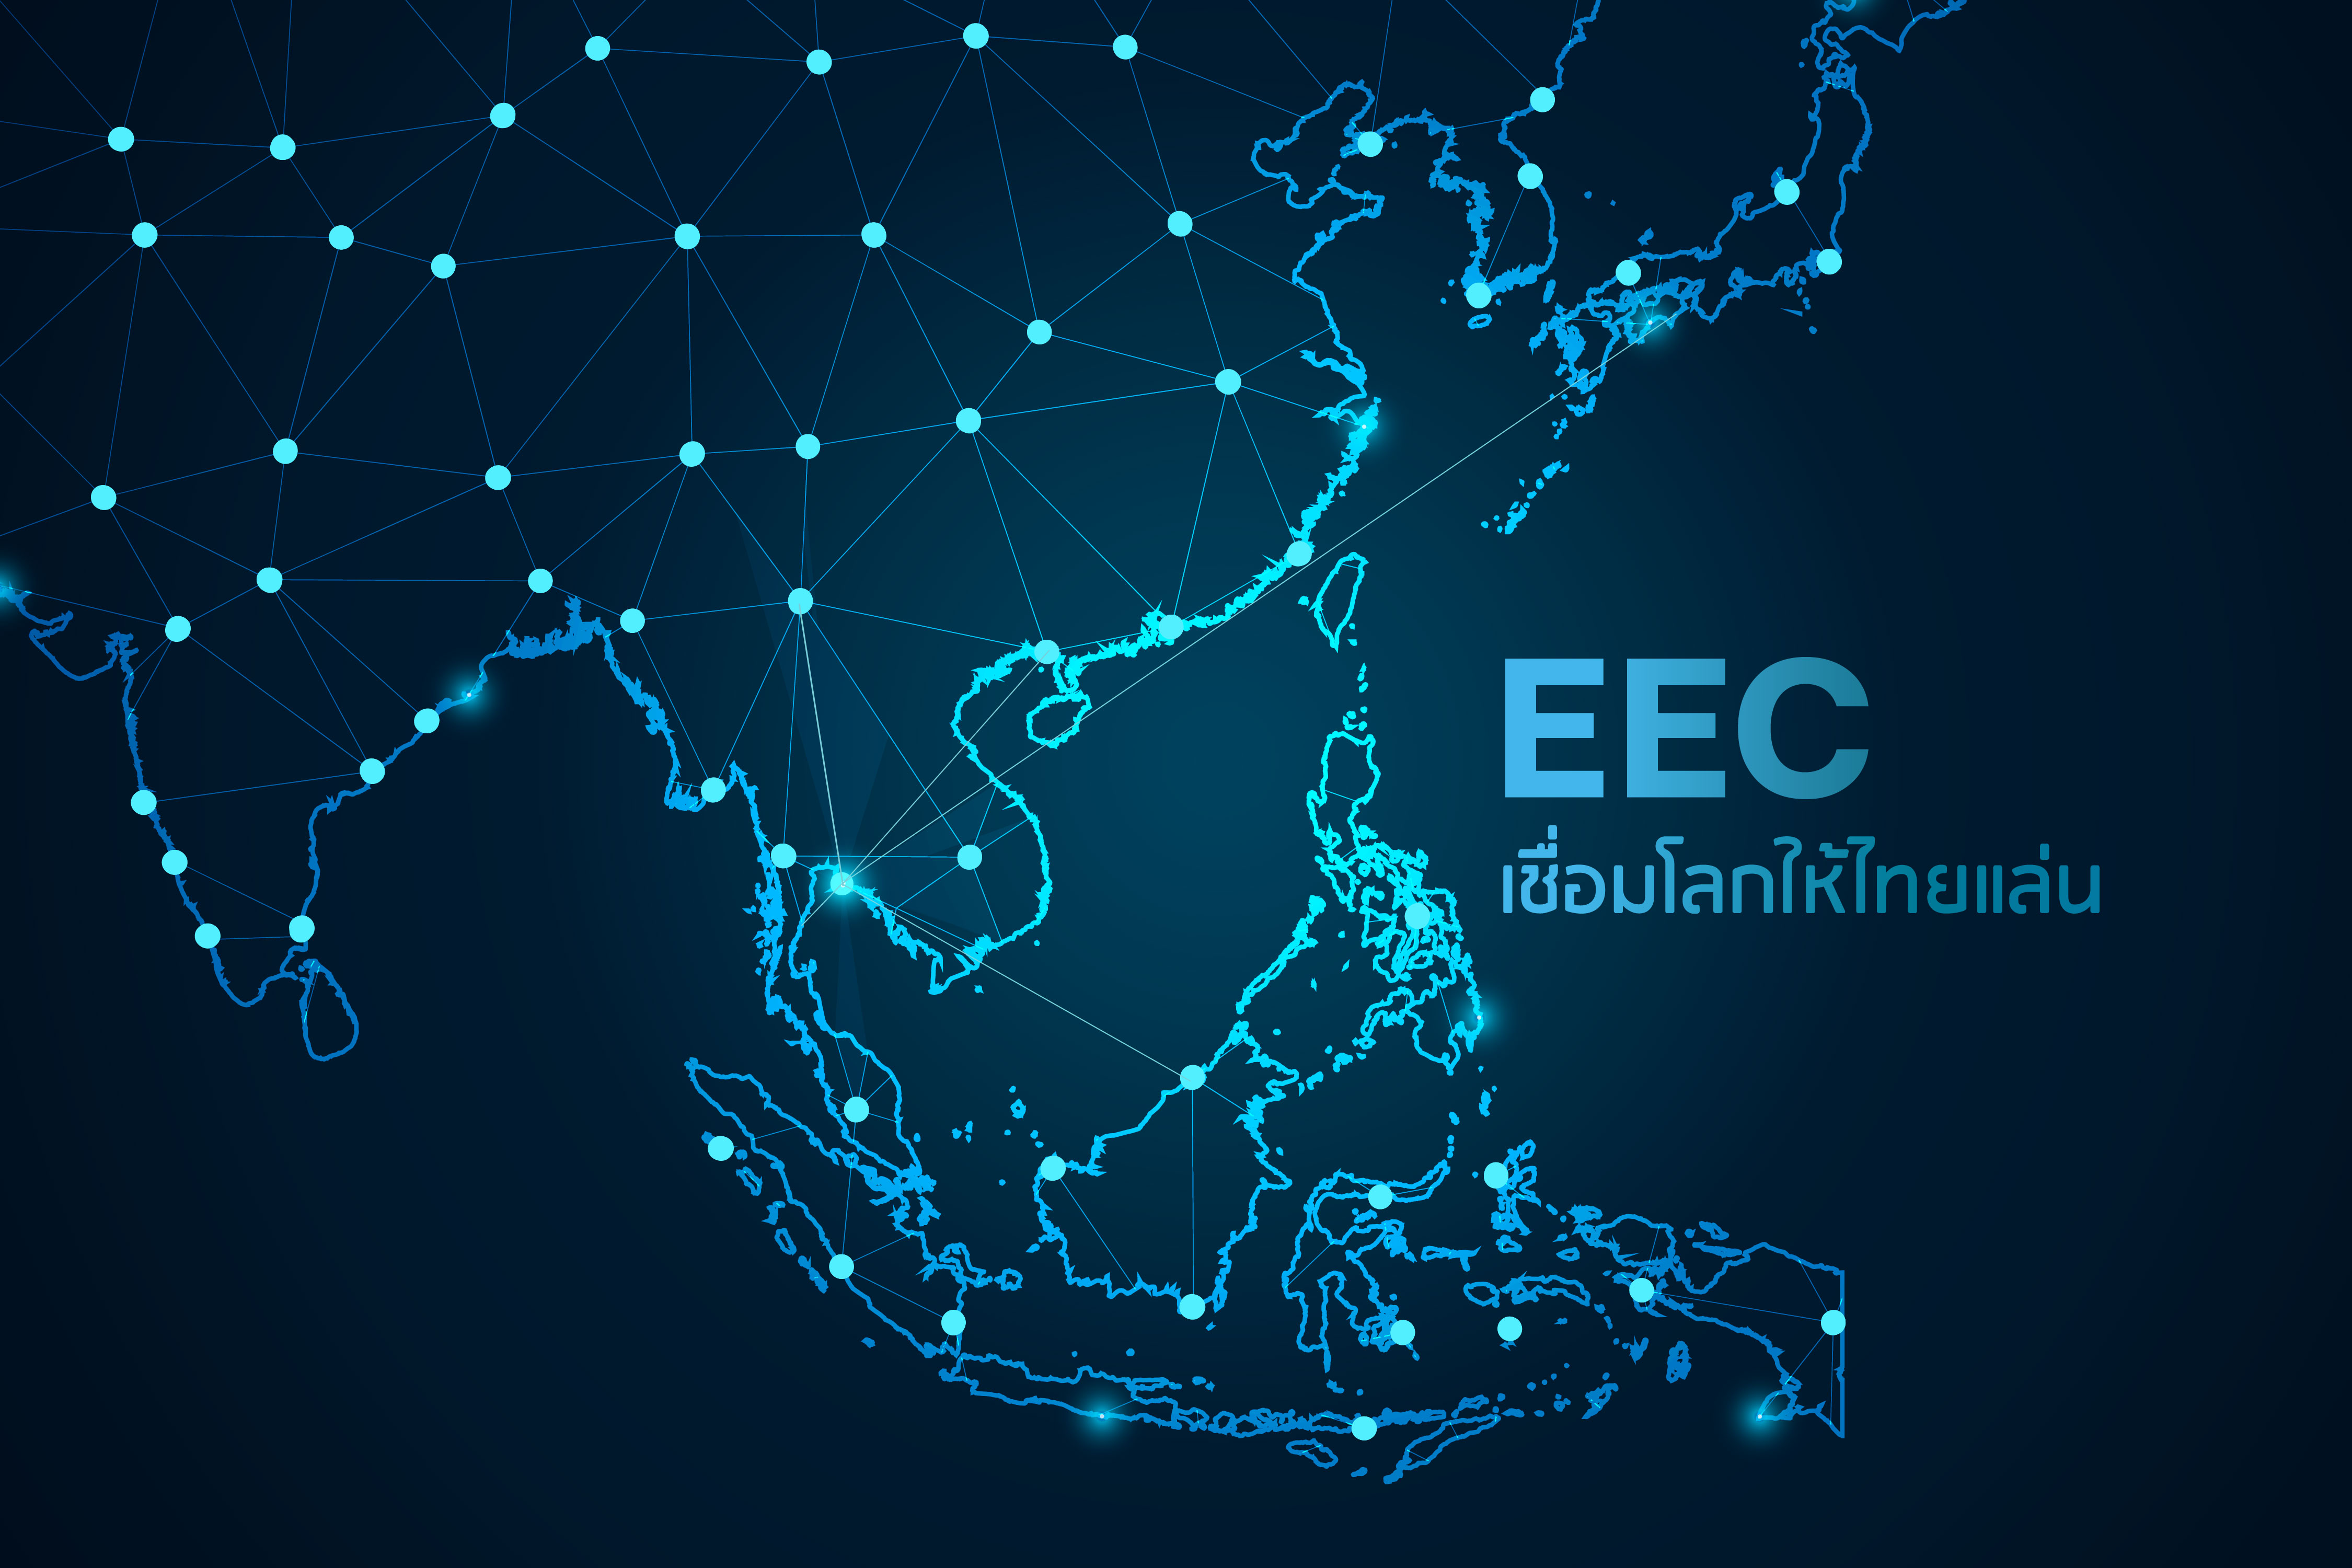 2019 Thailand Bangkok Economic Outlook  Thailand 4.0 master plan to implement leading logistics and supply chain